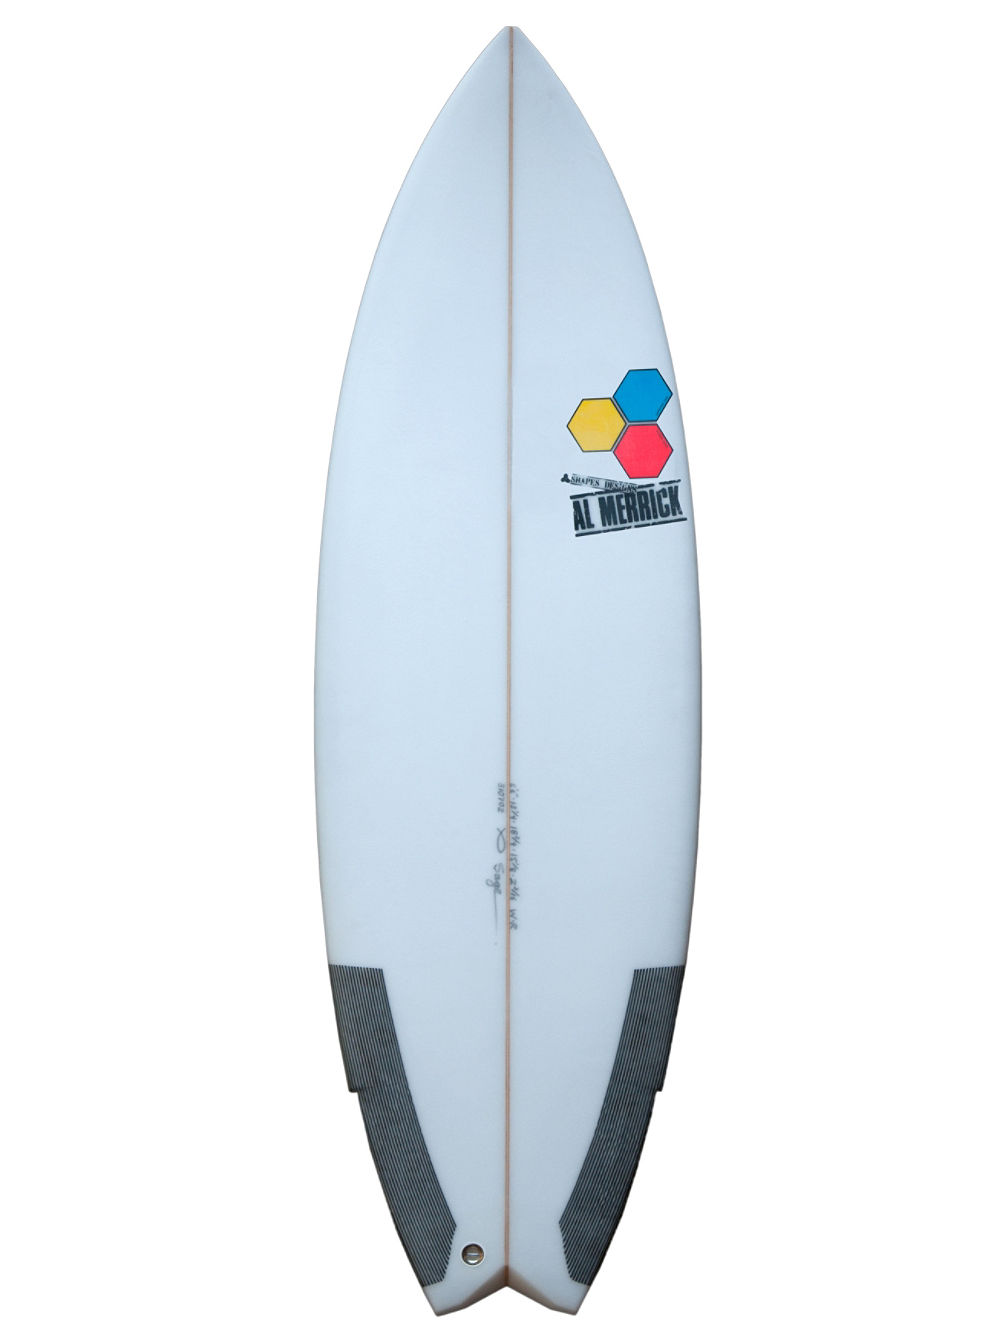 WeirdoRipper 5'7 Surfboard